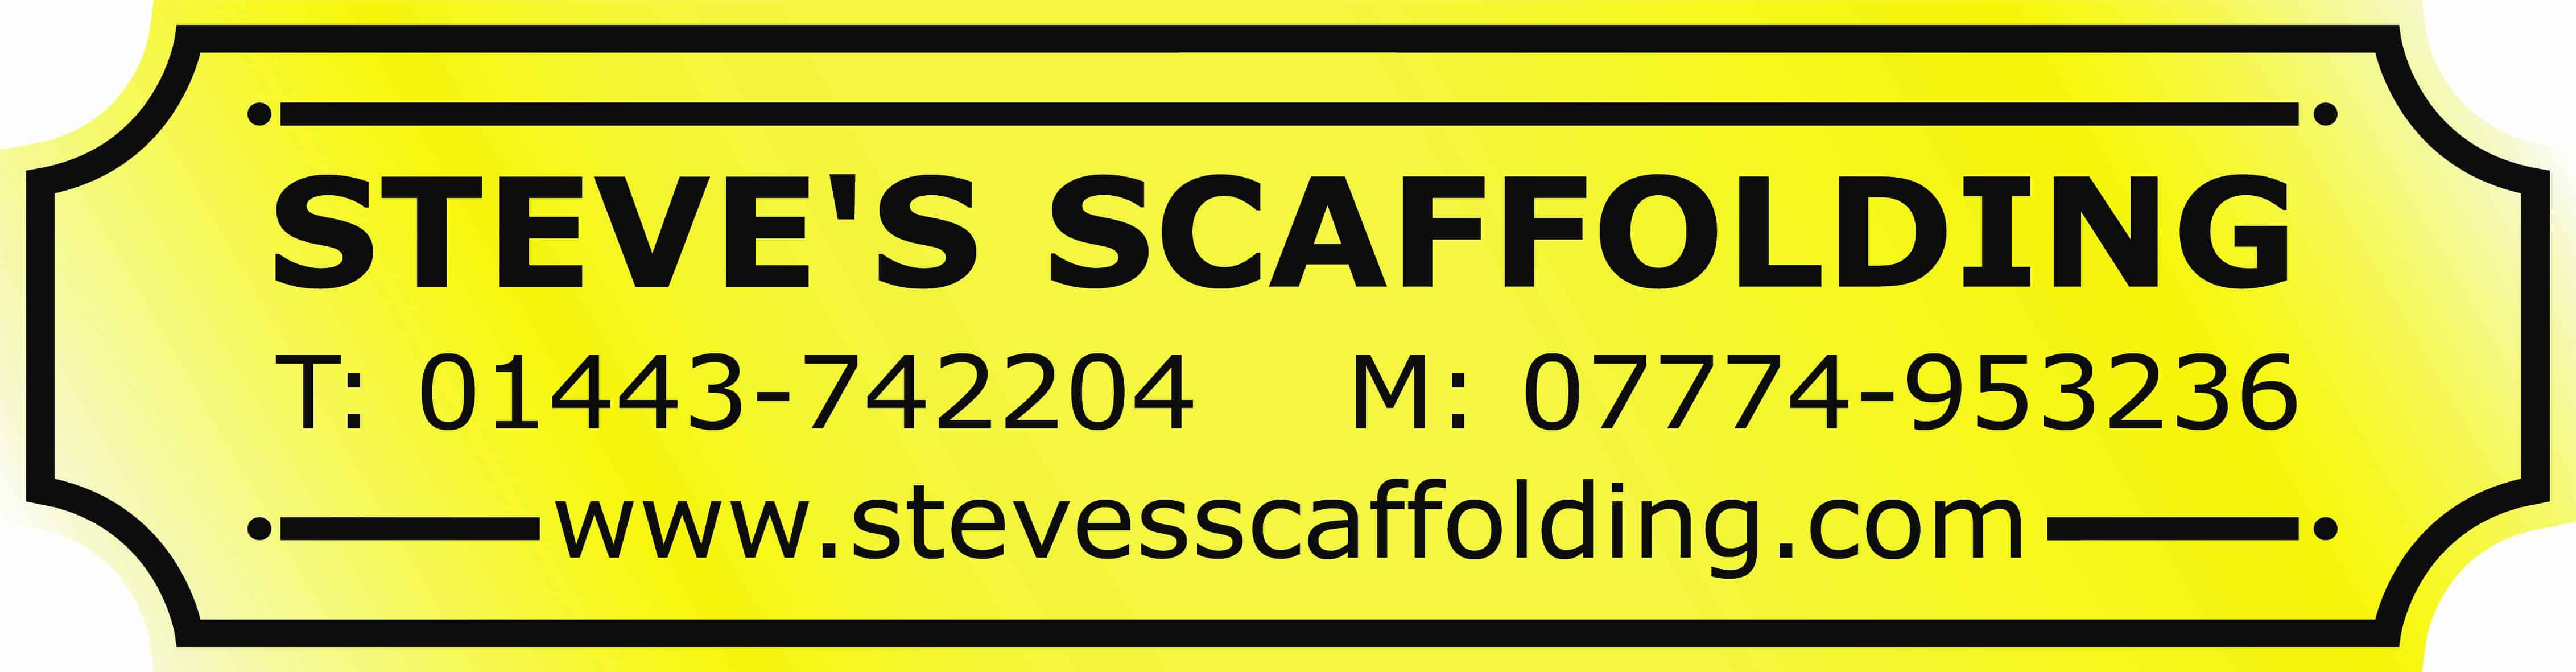 Scaffolding and Design Service